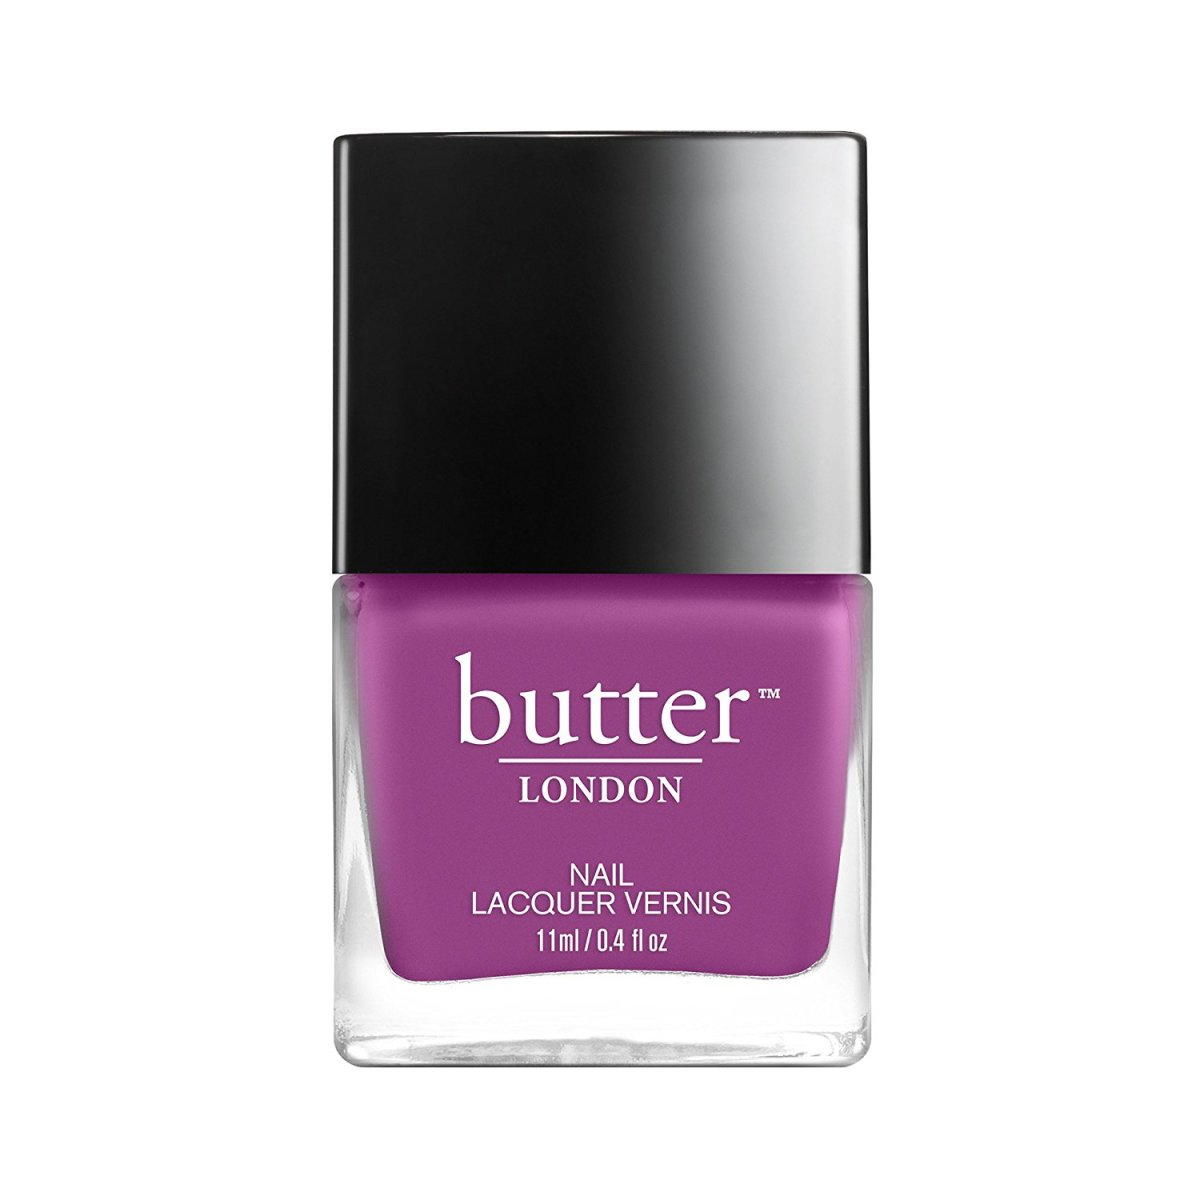 Buttern London Easy Peasy Nail Polish